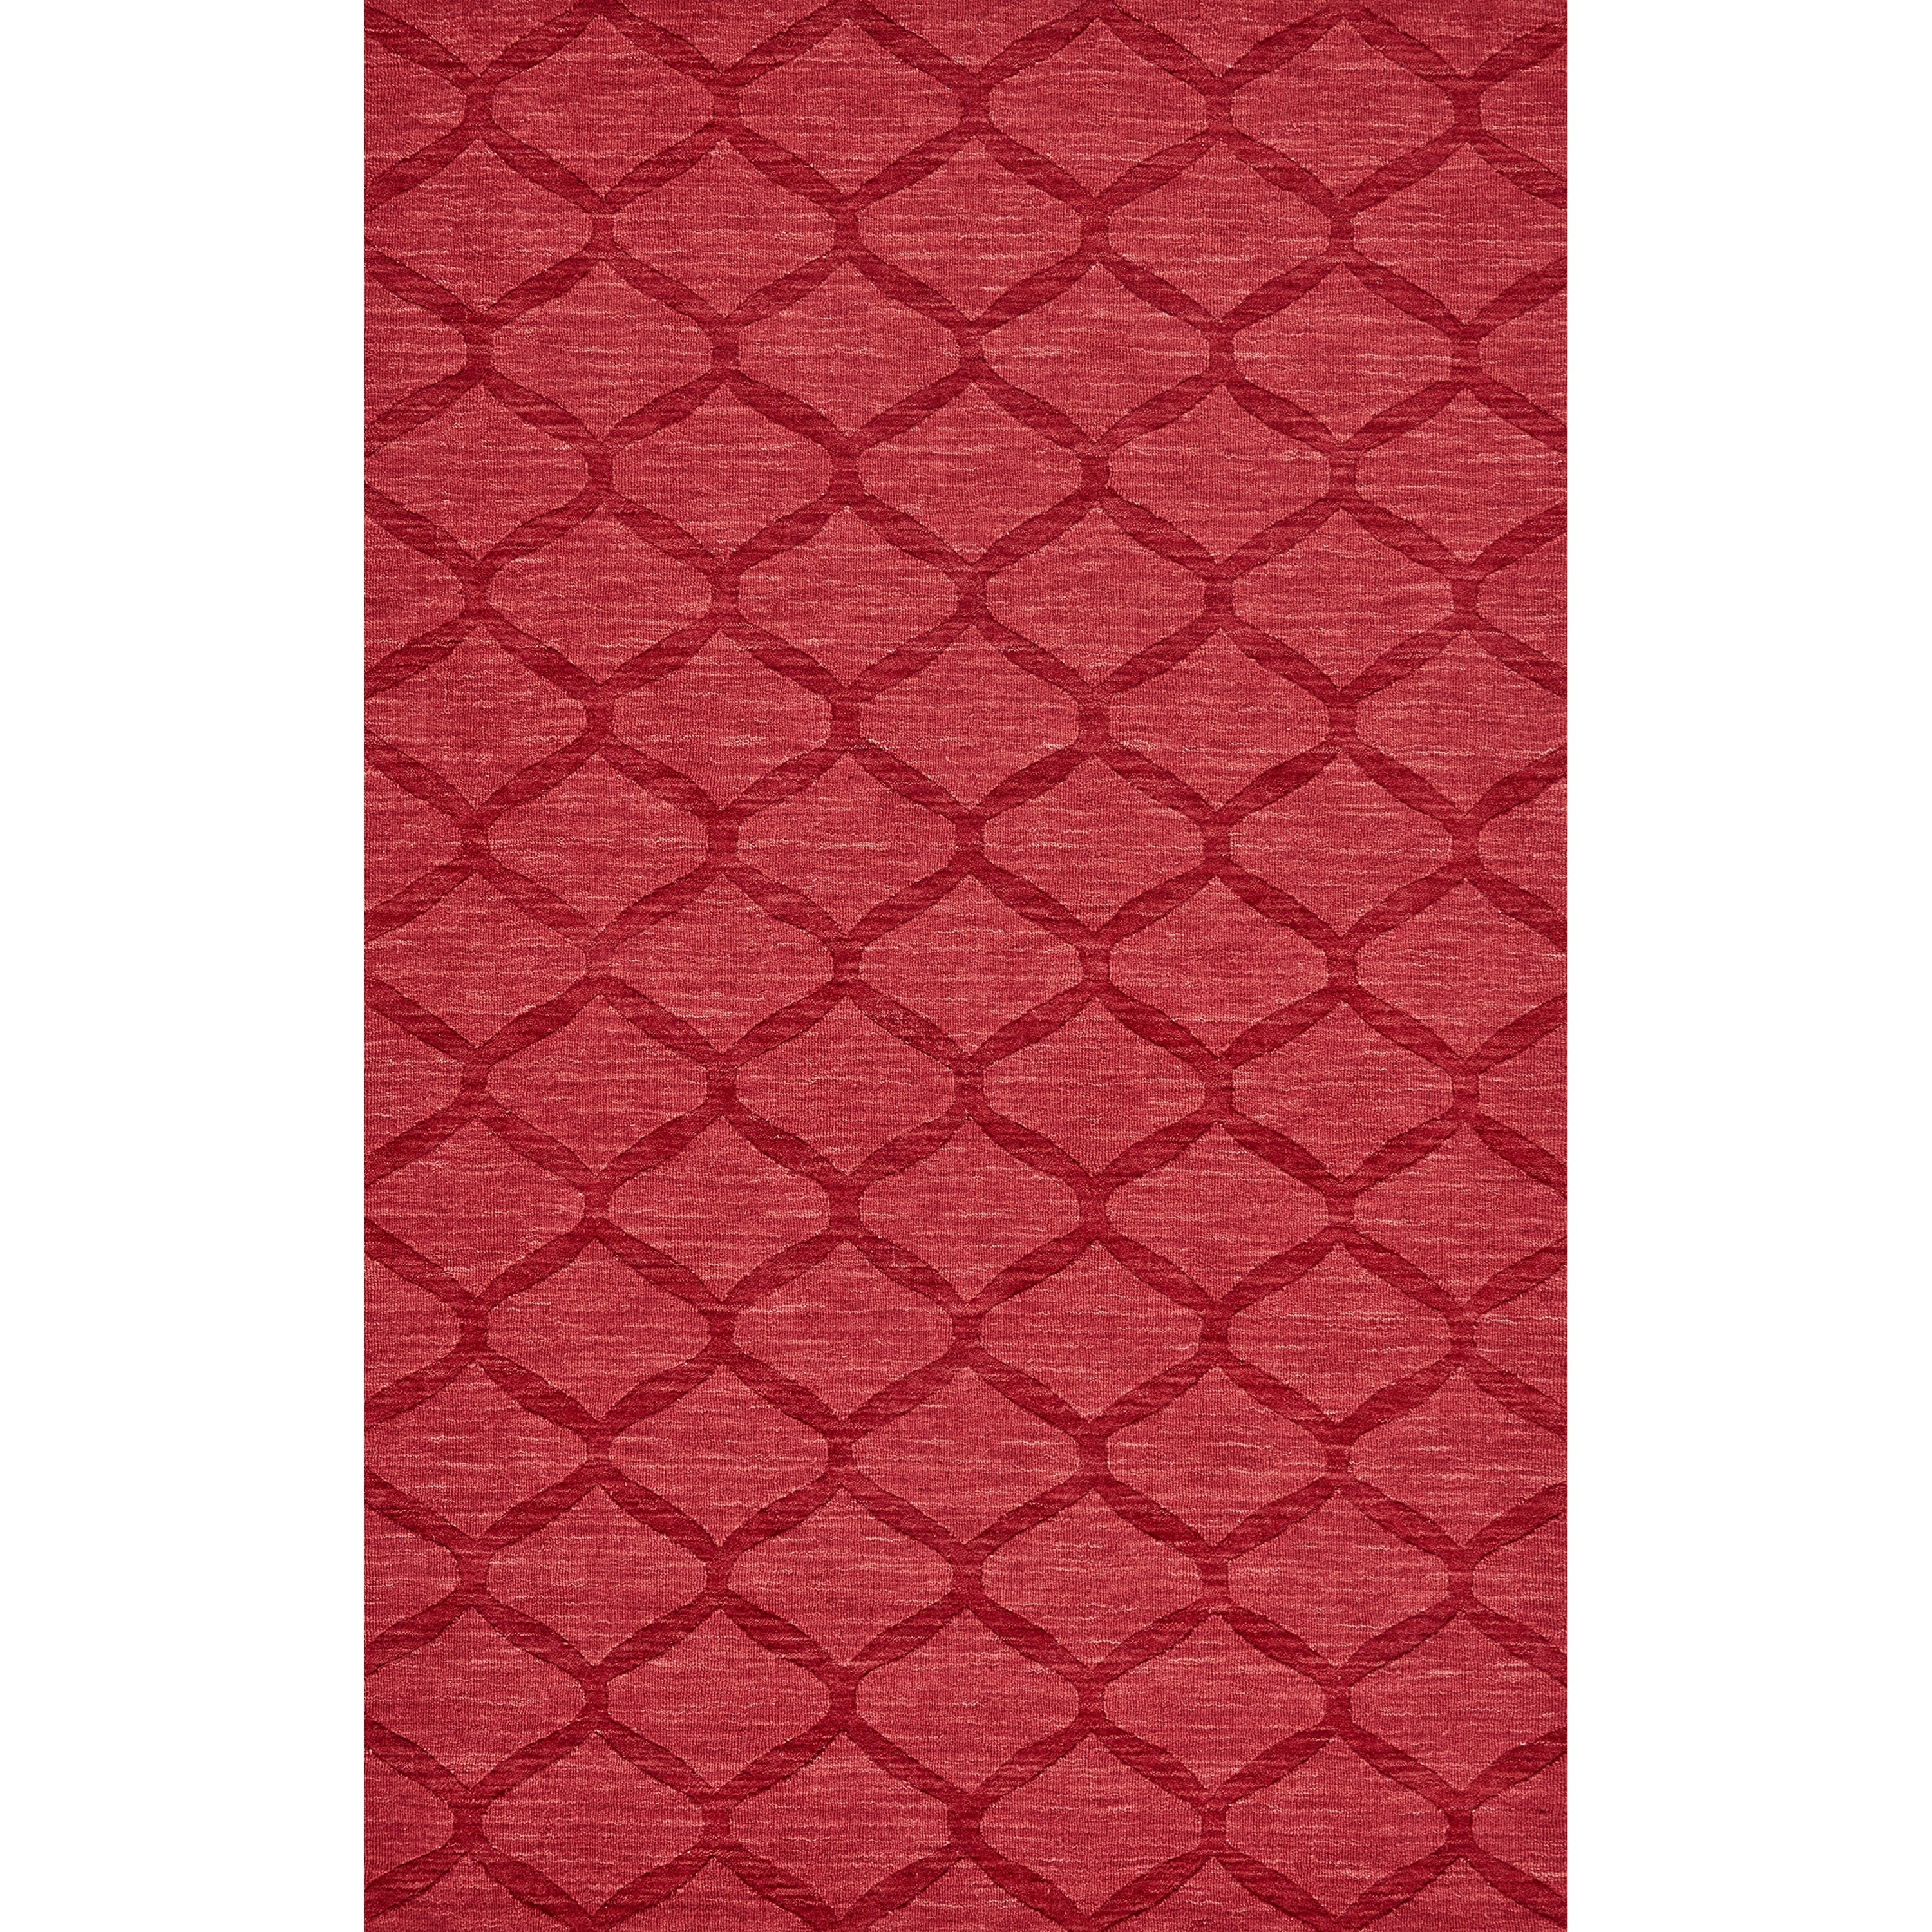 Soma Red 8' X 11' Area Rug by Feizy Rugs at Sprintz Furniture